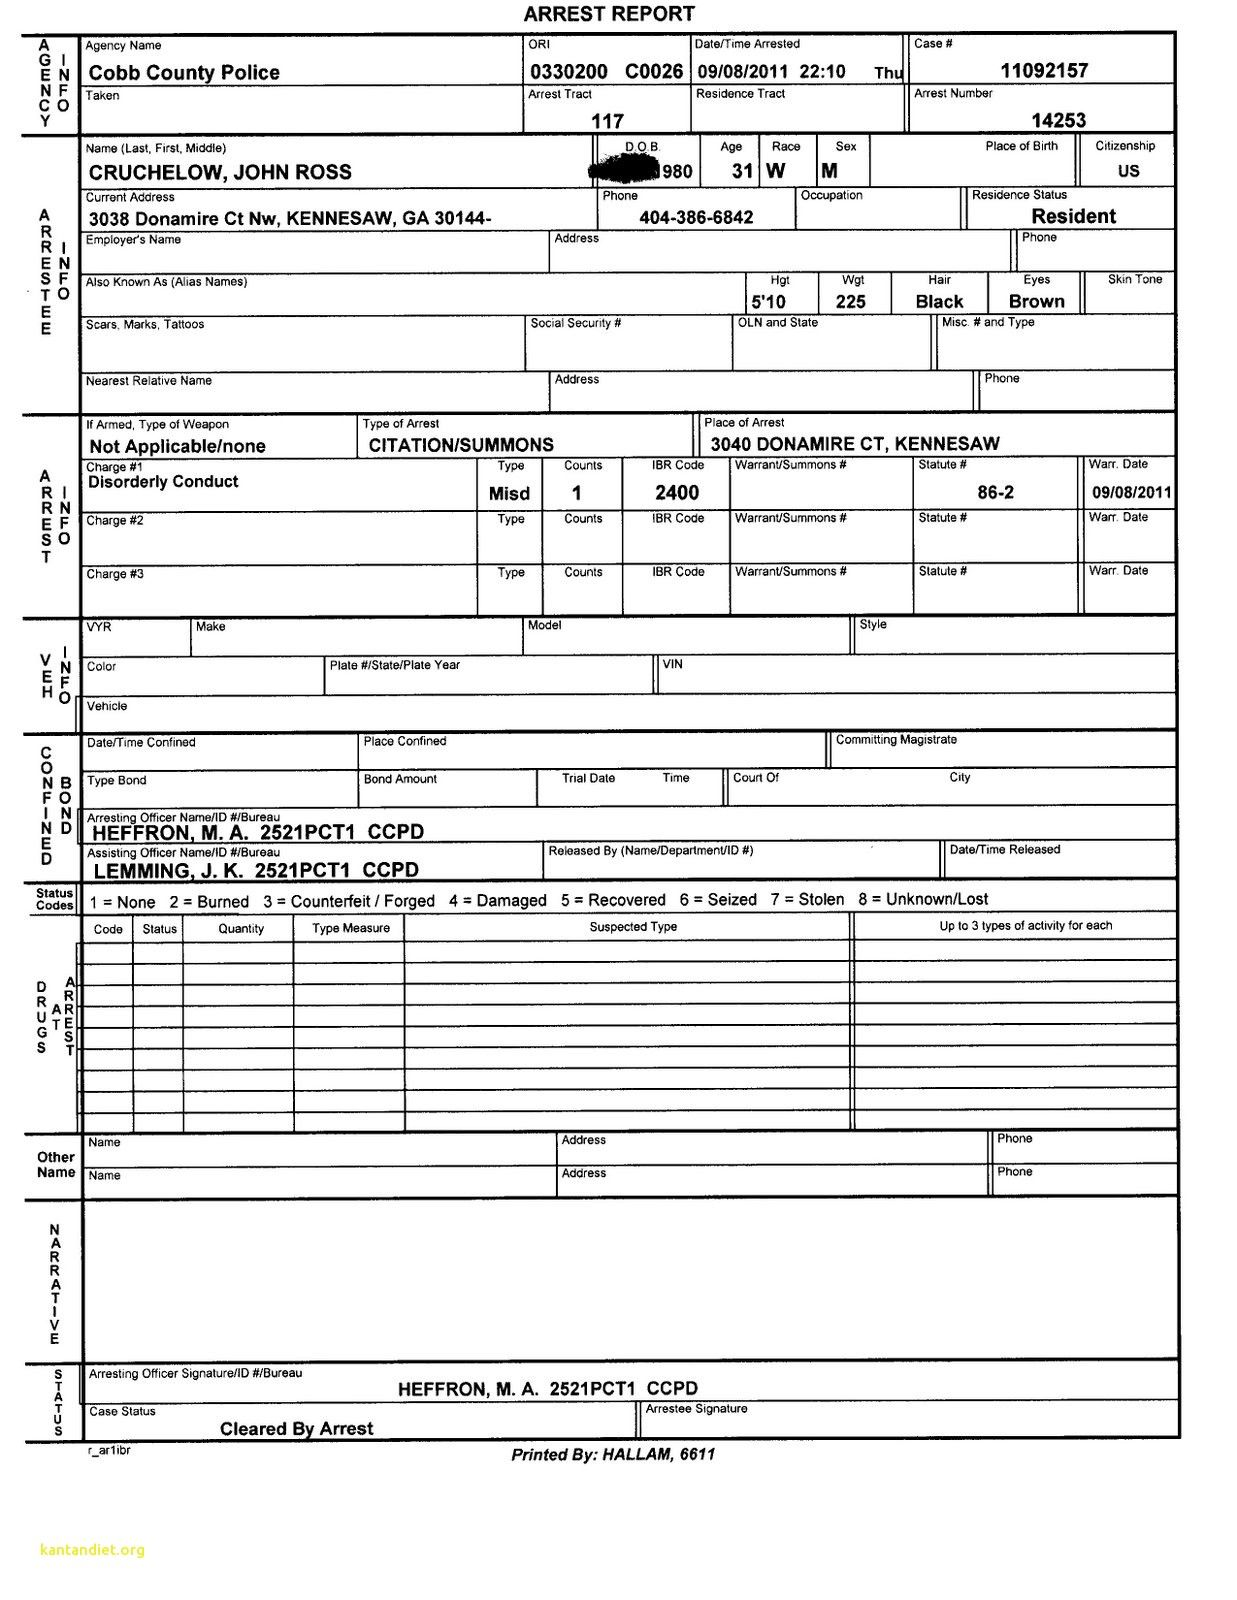 Image Result For 1980 Police Report